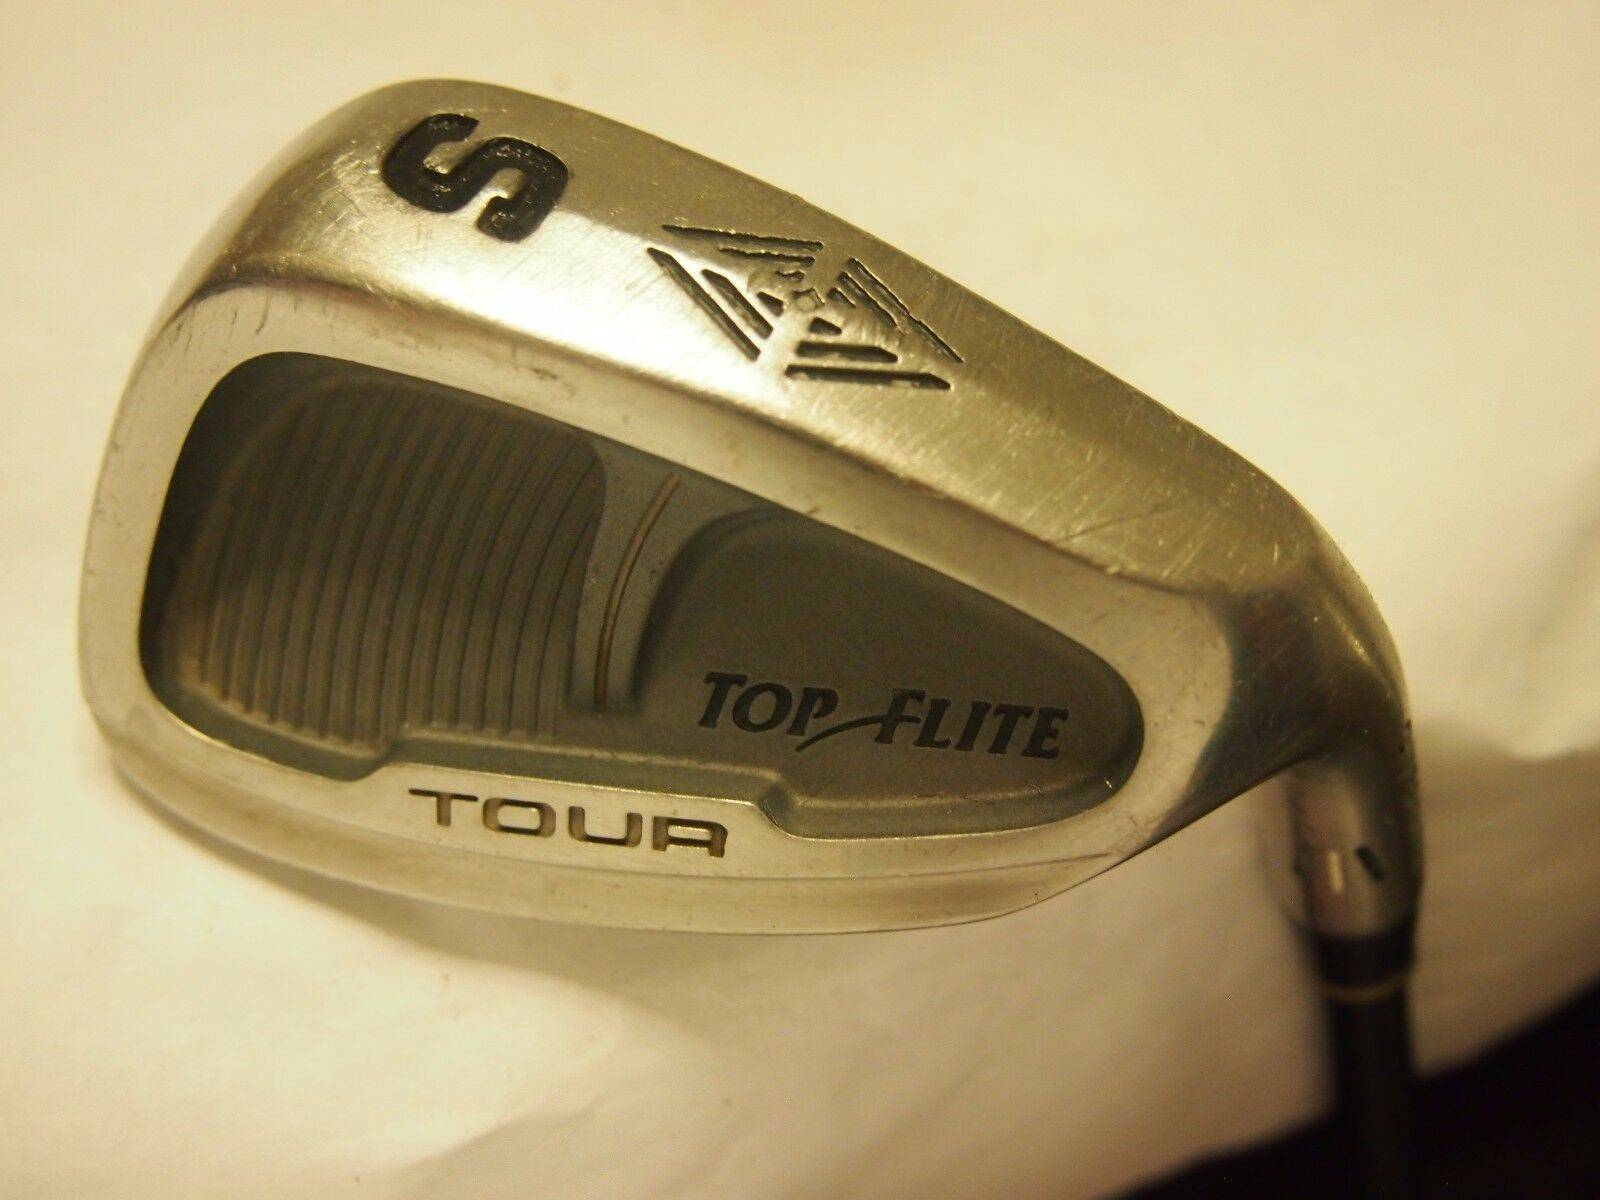 TOP FLITE TOUR SANDWEDGE MENS R H--FREE SHIPPING IN USA